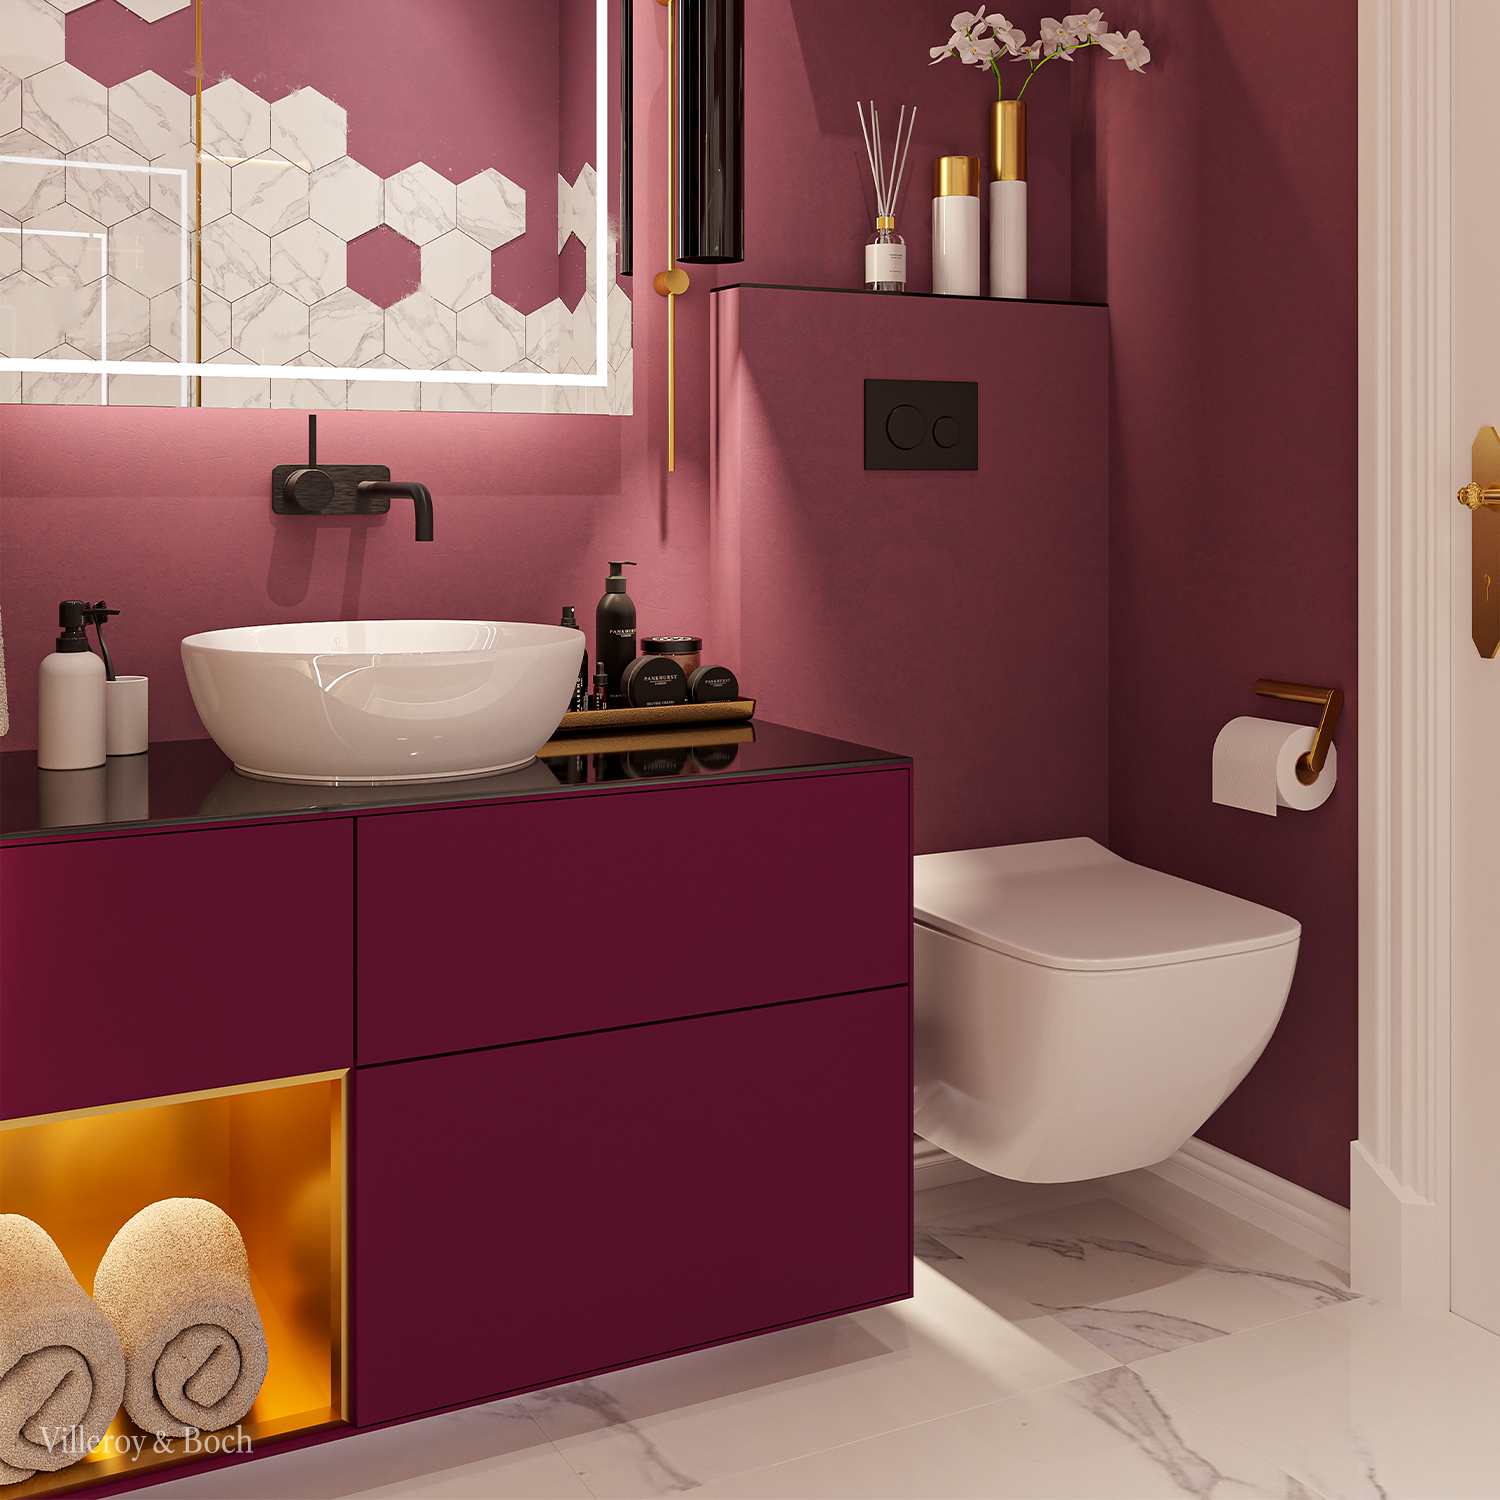 Bathroom Design In Berry Colours In 2020 Rot Farbe